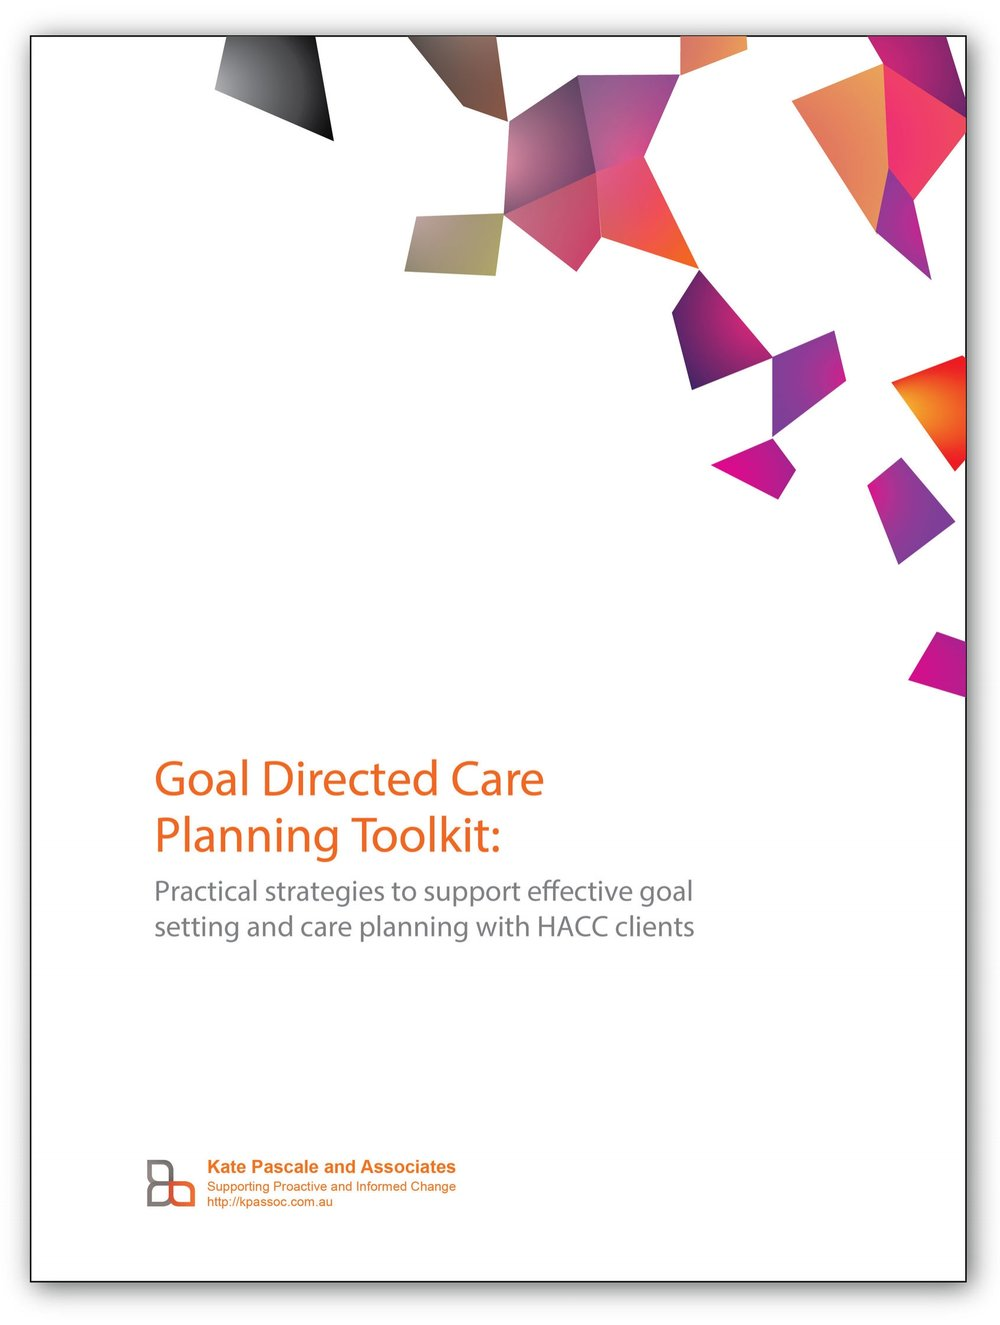 Goal-Directed-Care-Planning-Toolkit-2nd-Edition-2015.jpg